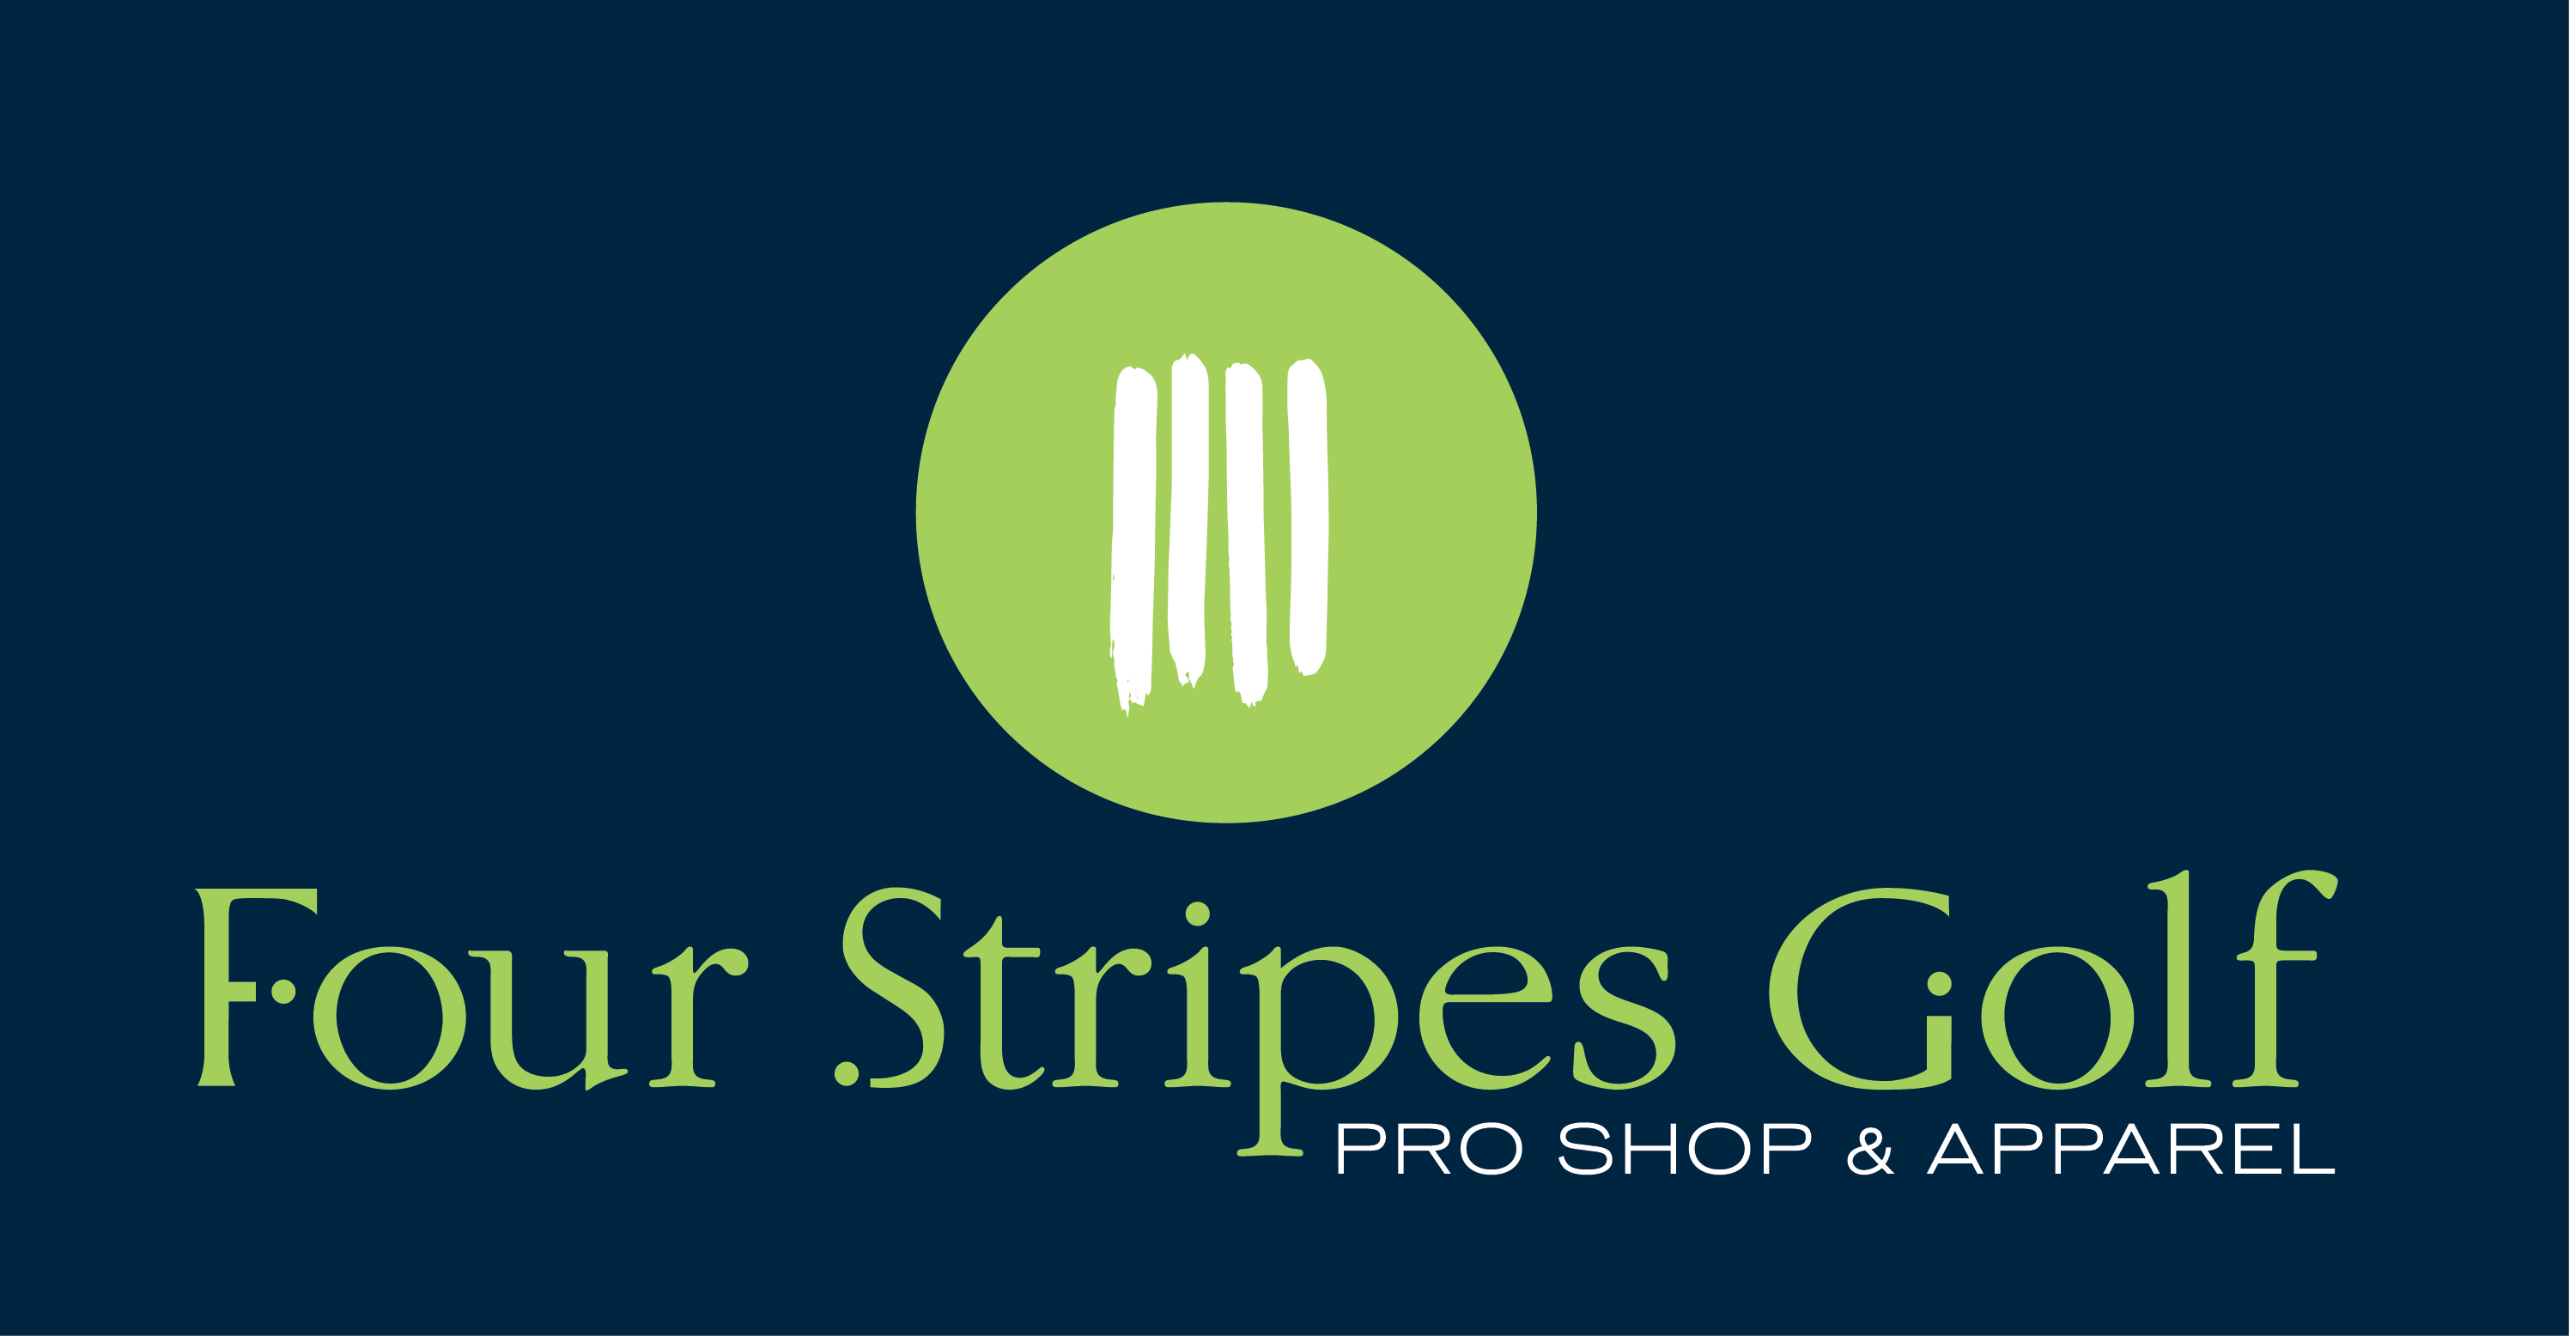 Four-Stripes-Golf-logo-Blue-BG-Large Sponsor & Advertise